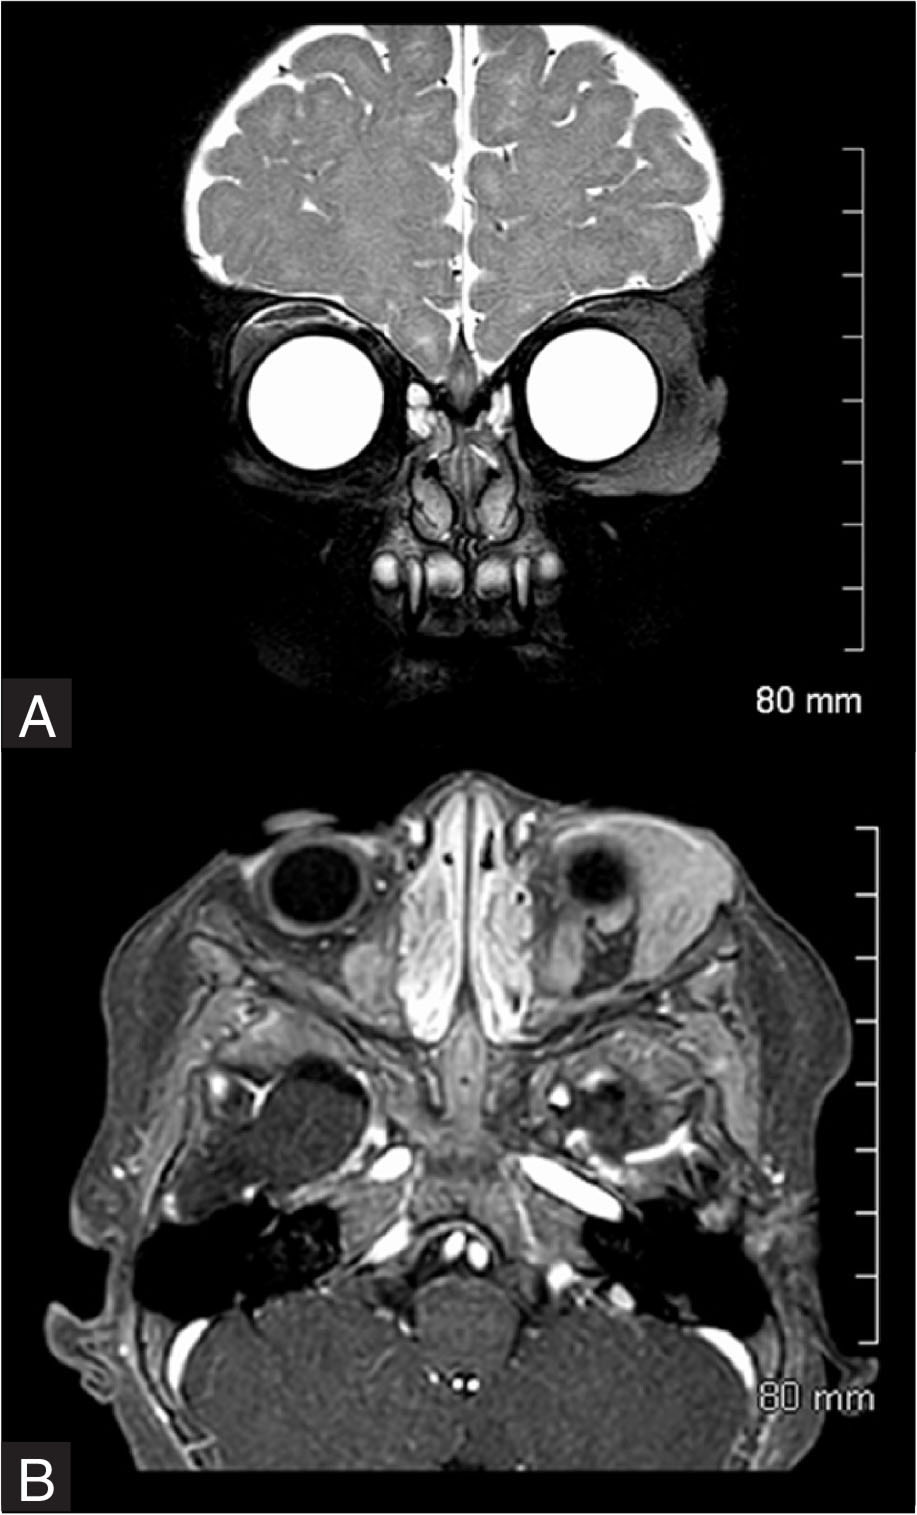 Magnetic resonance imaging. (A) Coronal view revealed soft tissue mass involving the temporal orbit of the left eye. (B) Axial view revealed left orbital soft tissue mass.